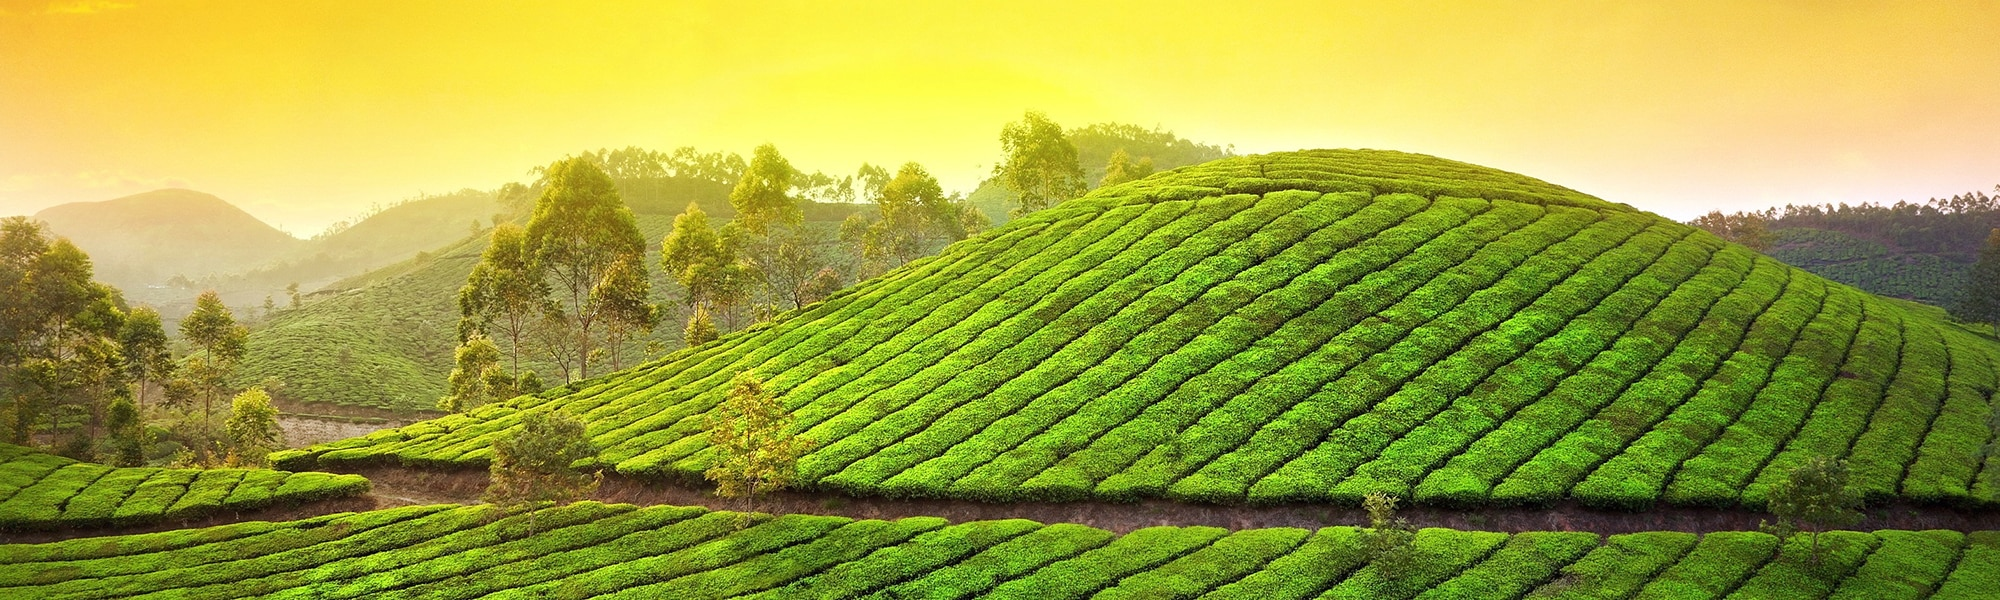 Munnar-The misty mountains